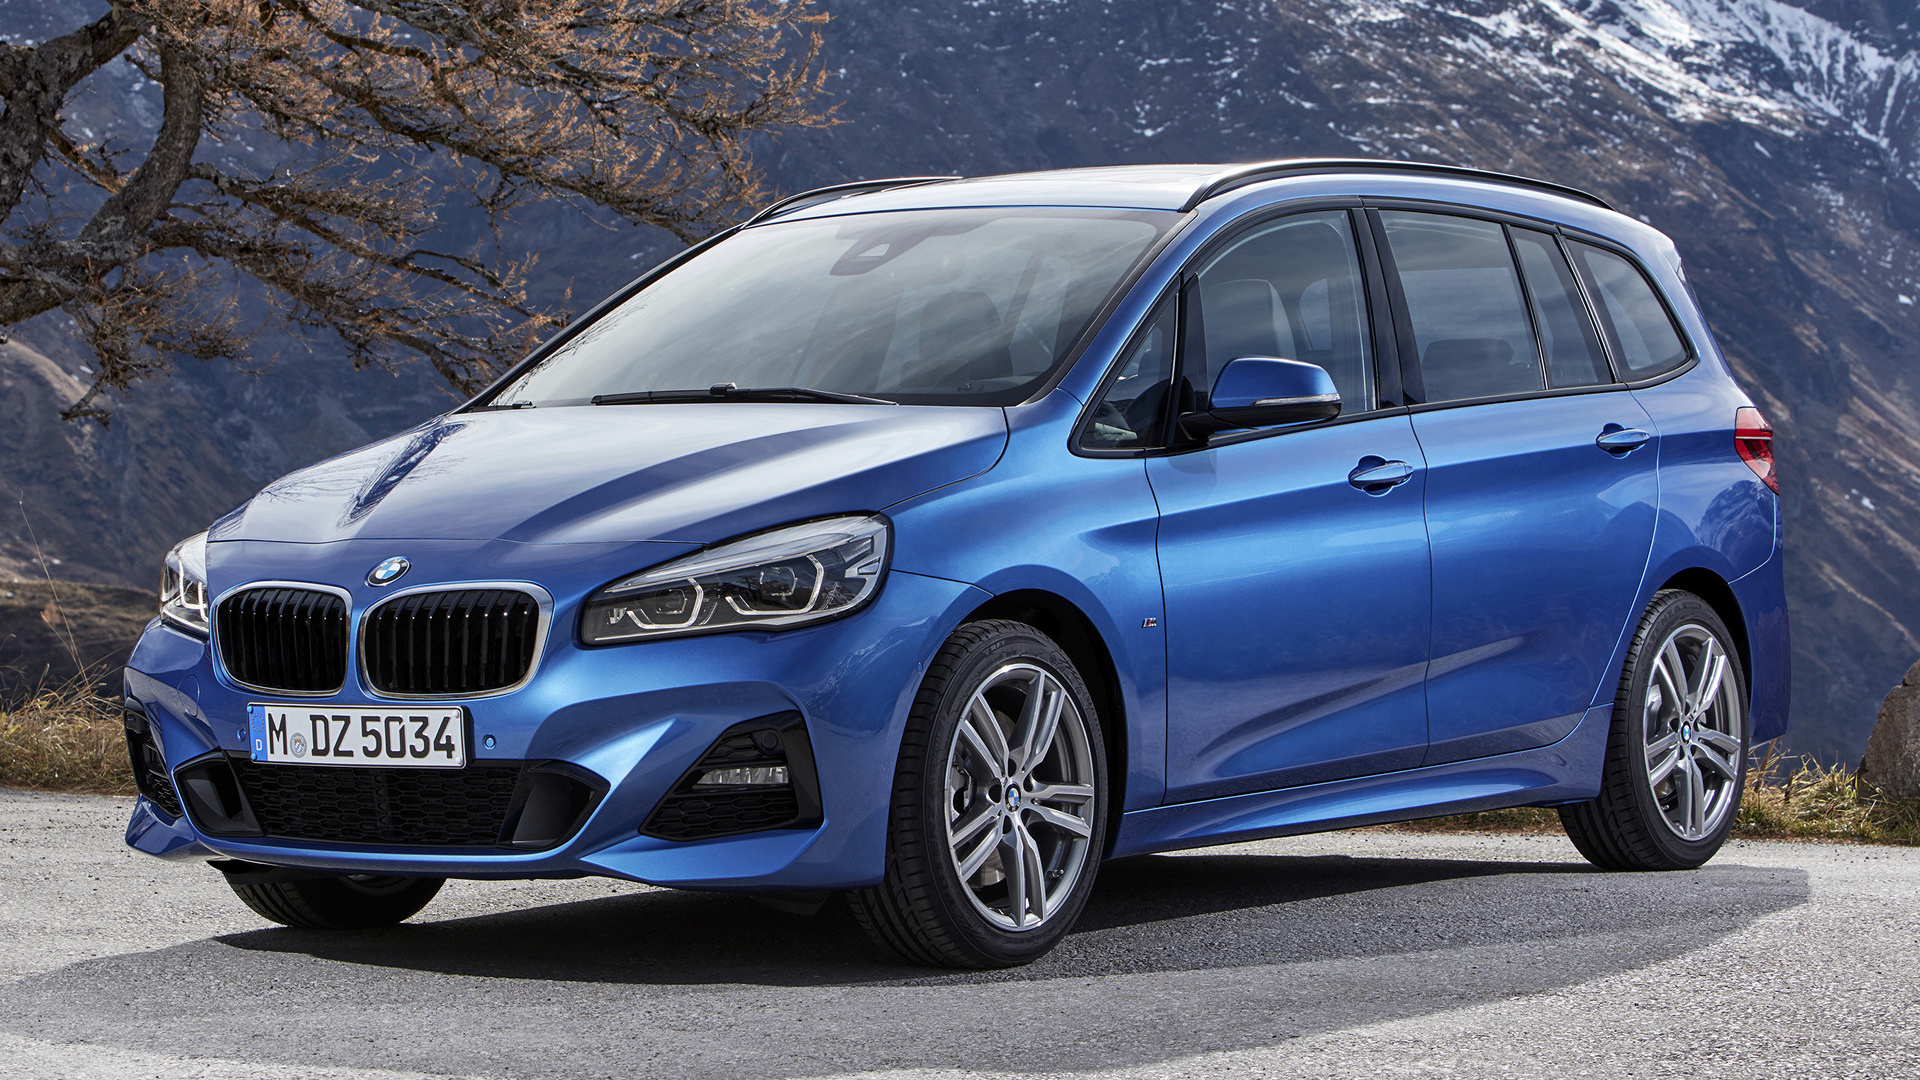 bmw 2 series gran tourer m sport 2018 wallpapers and hd. Black Bedroom Furniture Sets. Home Design Ideas